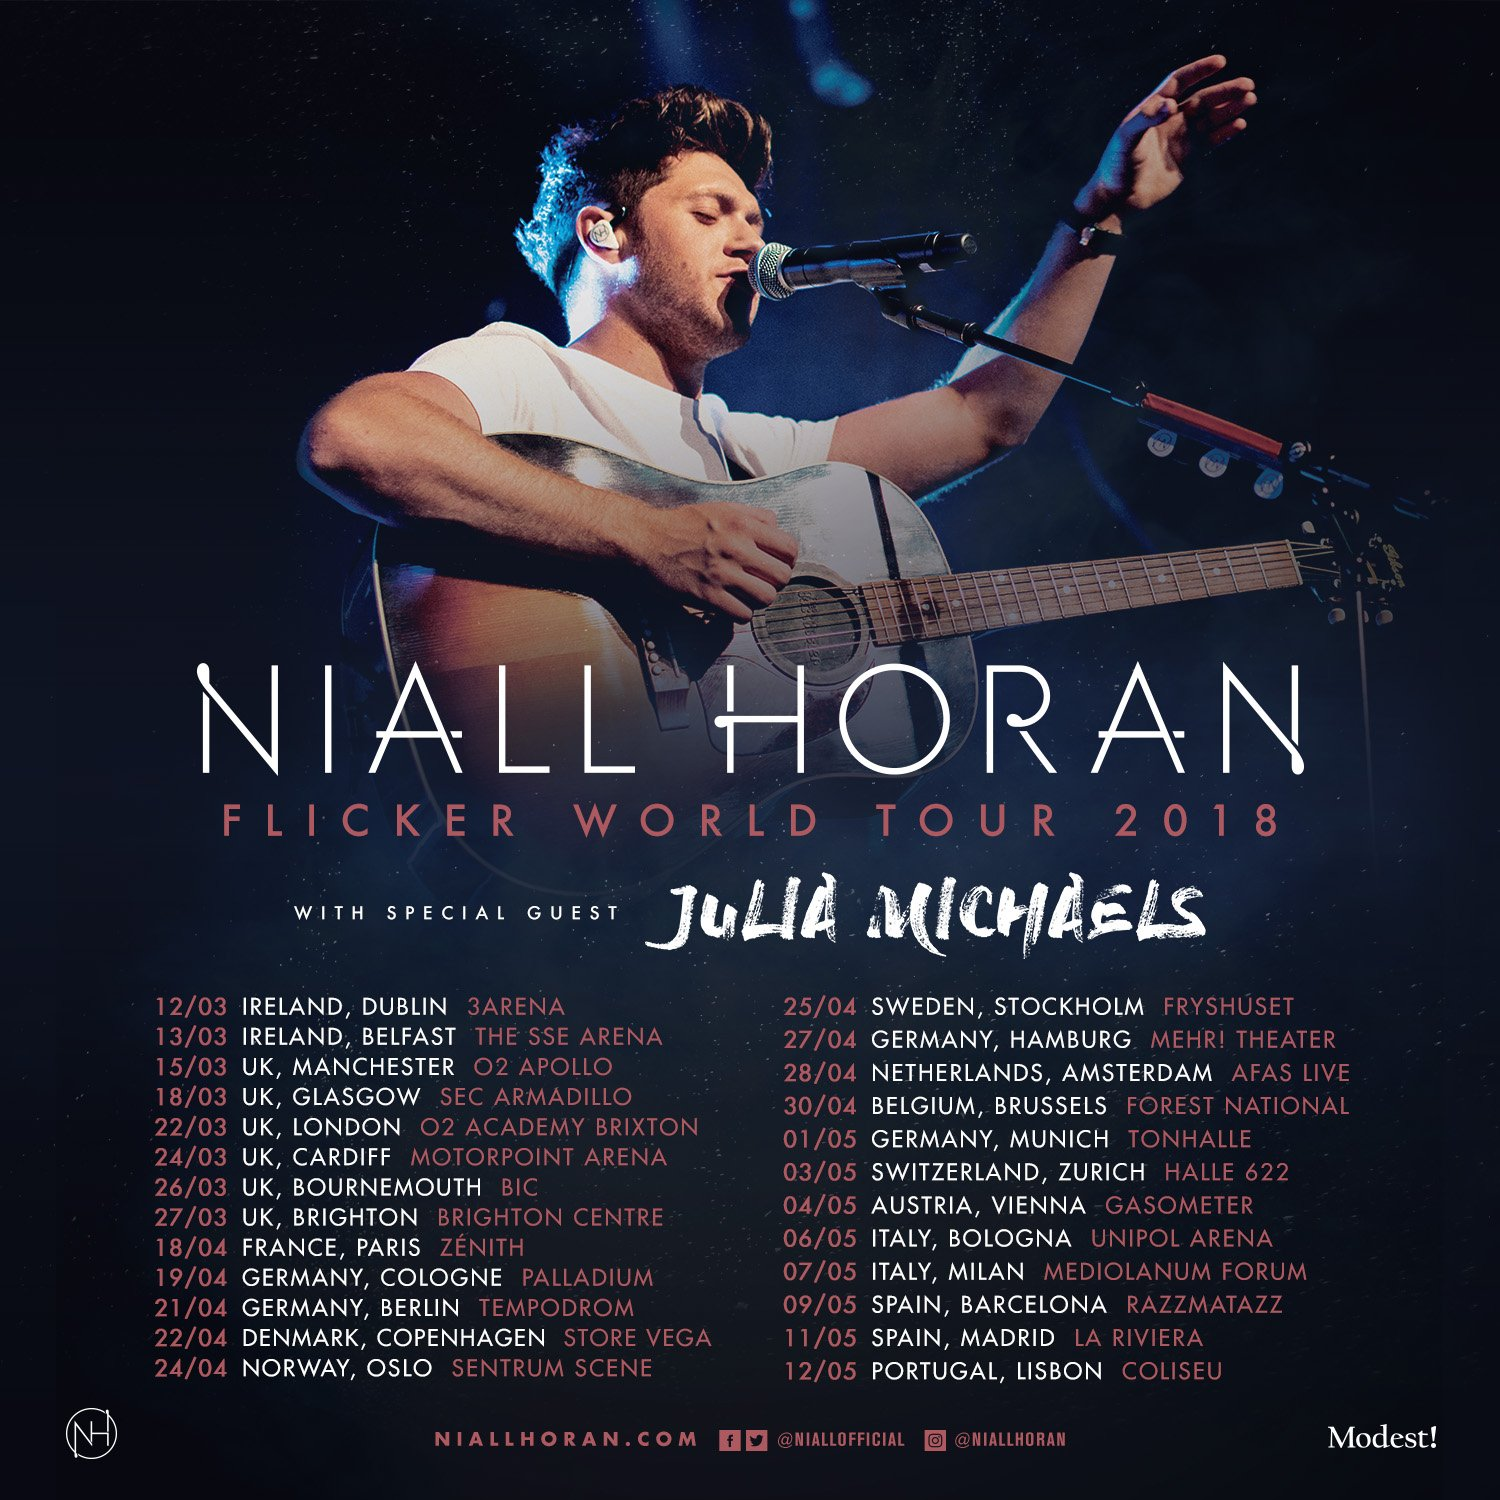 UK, Ireland & Europe , tickets to the Flicker World Tour are on general sale now !  https://t.co/n0M7qWZdtf https://t.co/Jp7KmOIf1J